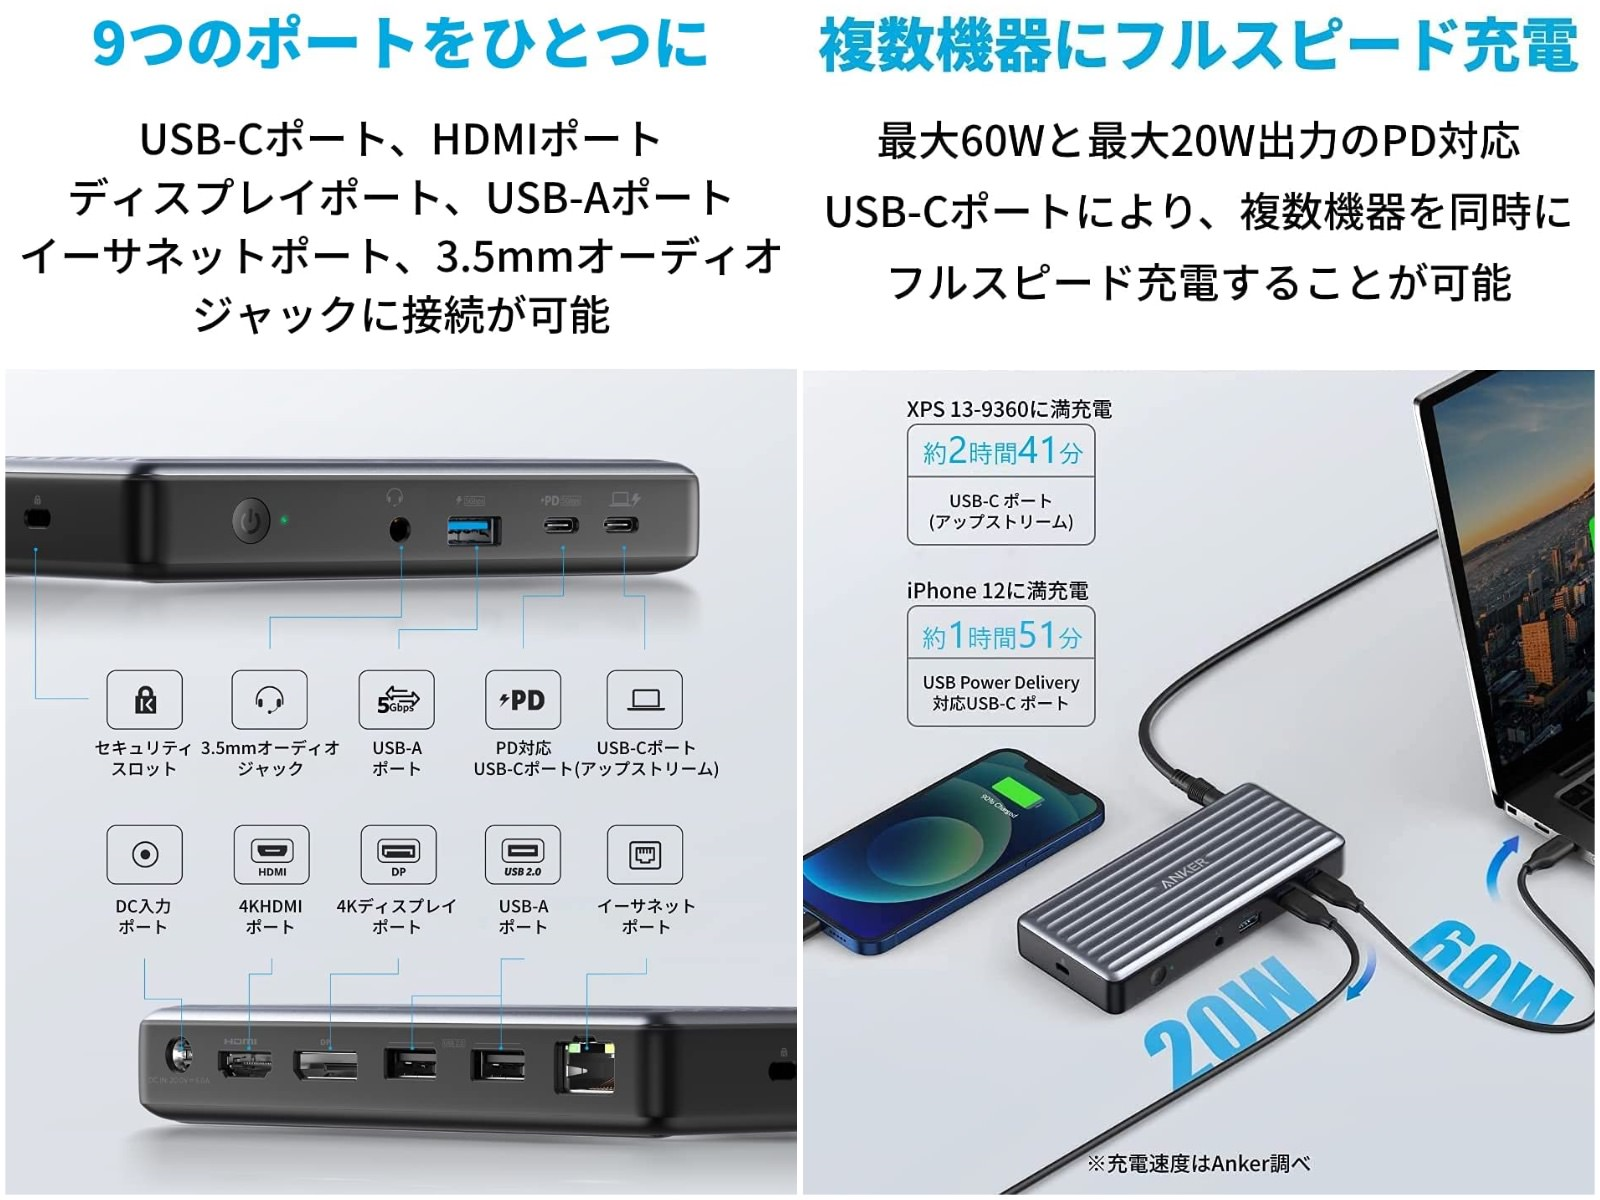 Anker PowerExpand 9 in 1 USB C PD Dock info